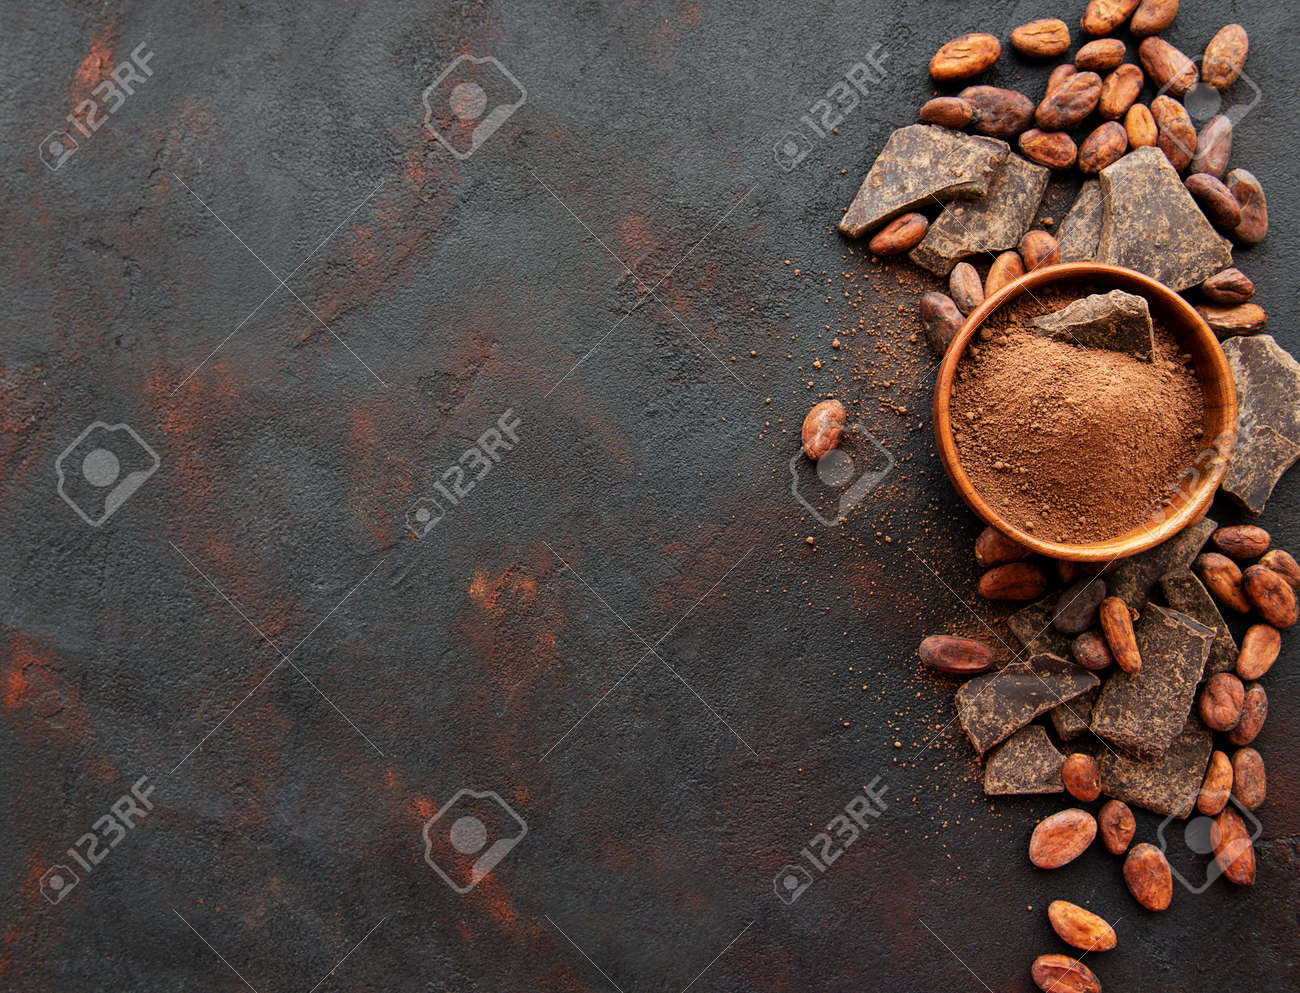 Natural cocoa powder and cocoa beans on a black background - 120051555